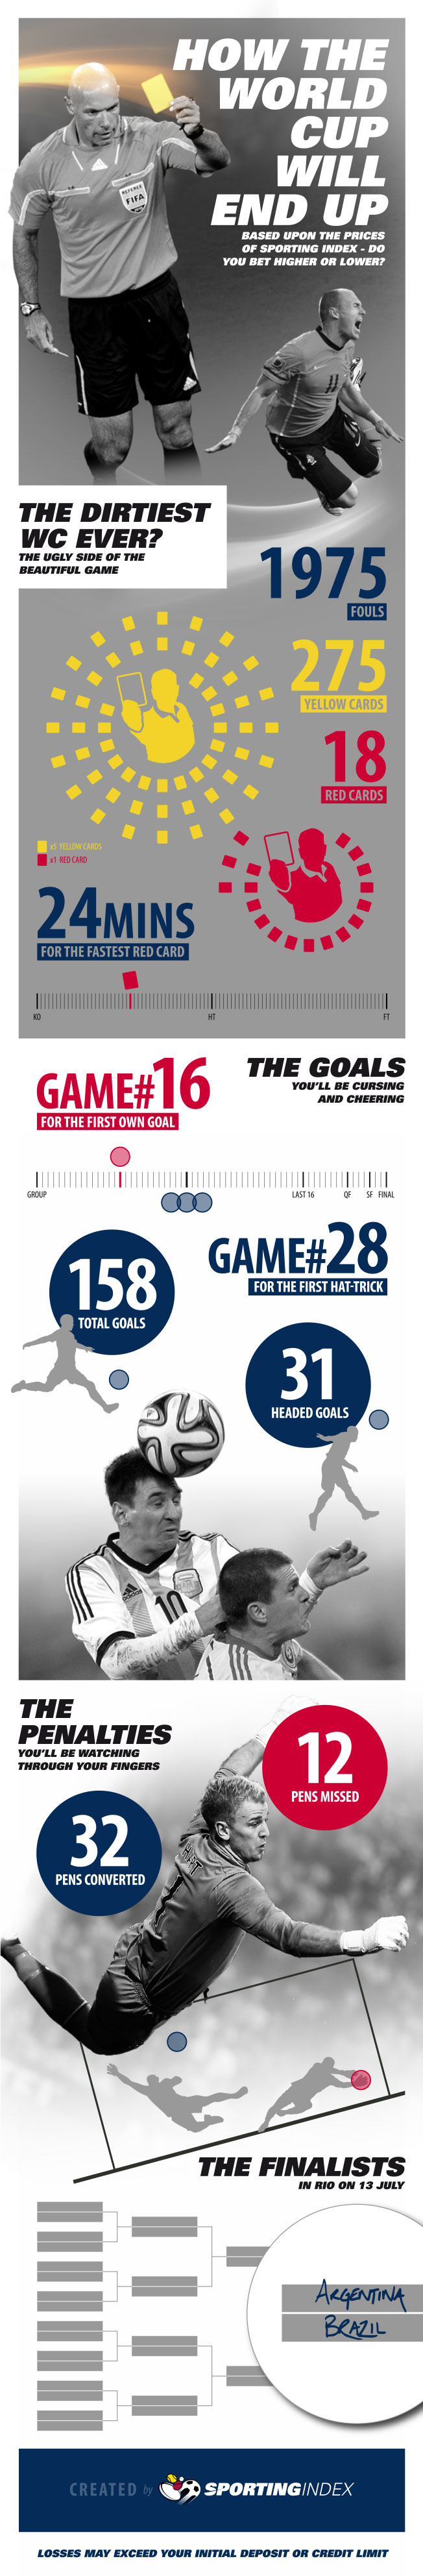 2014 Football World Cup Infograpic